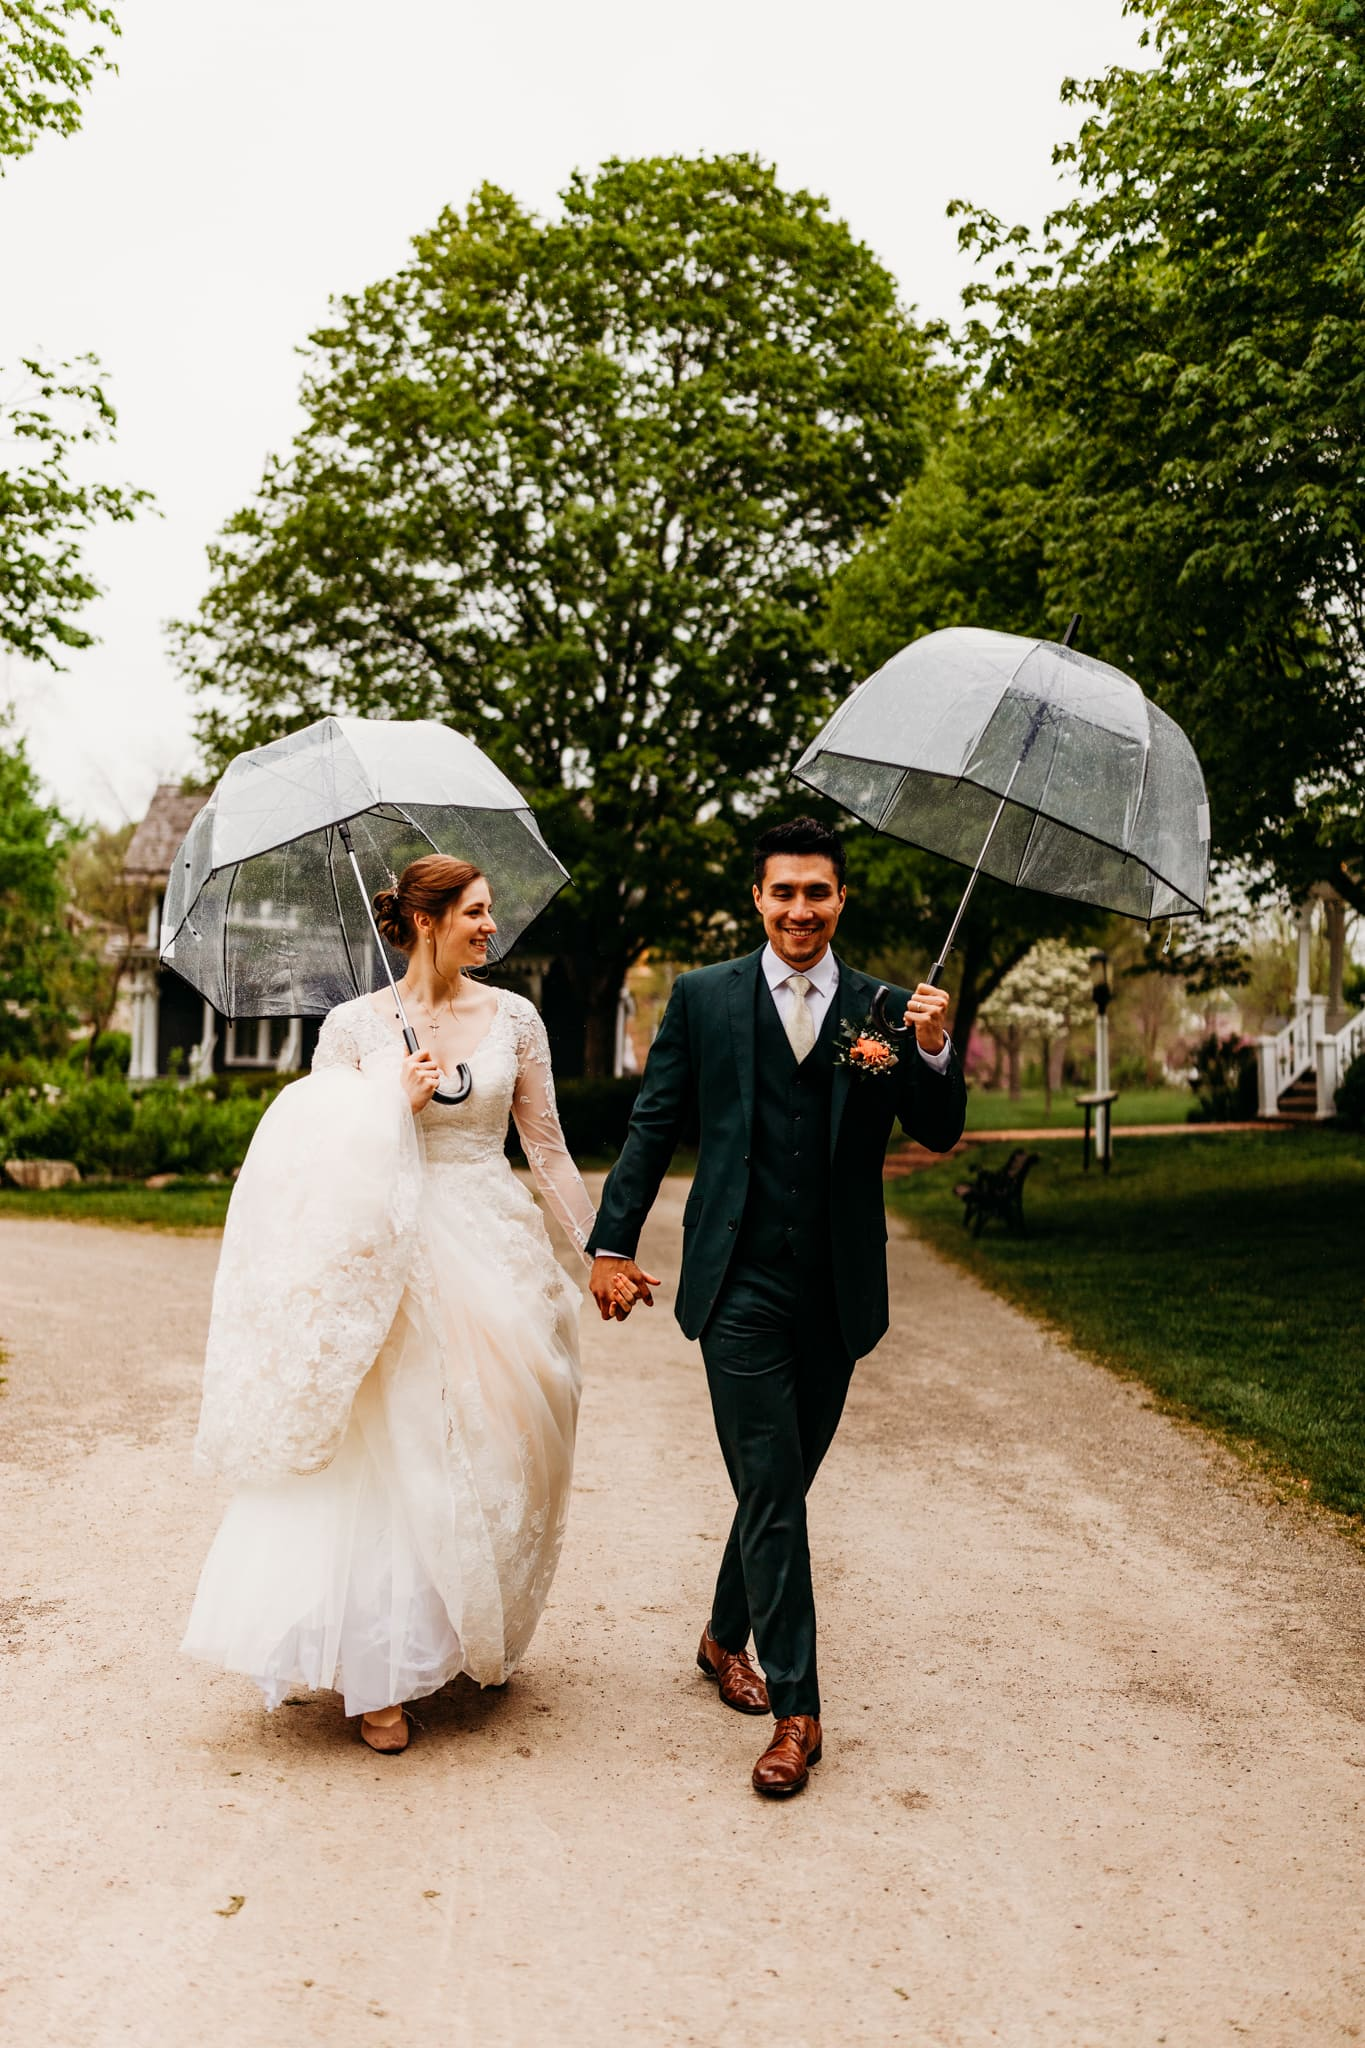 Couple walks together under umbrellas in the rain after their wedding at Mill Race Village